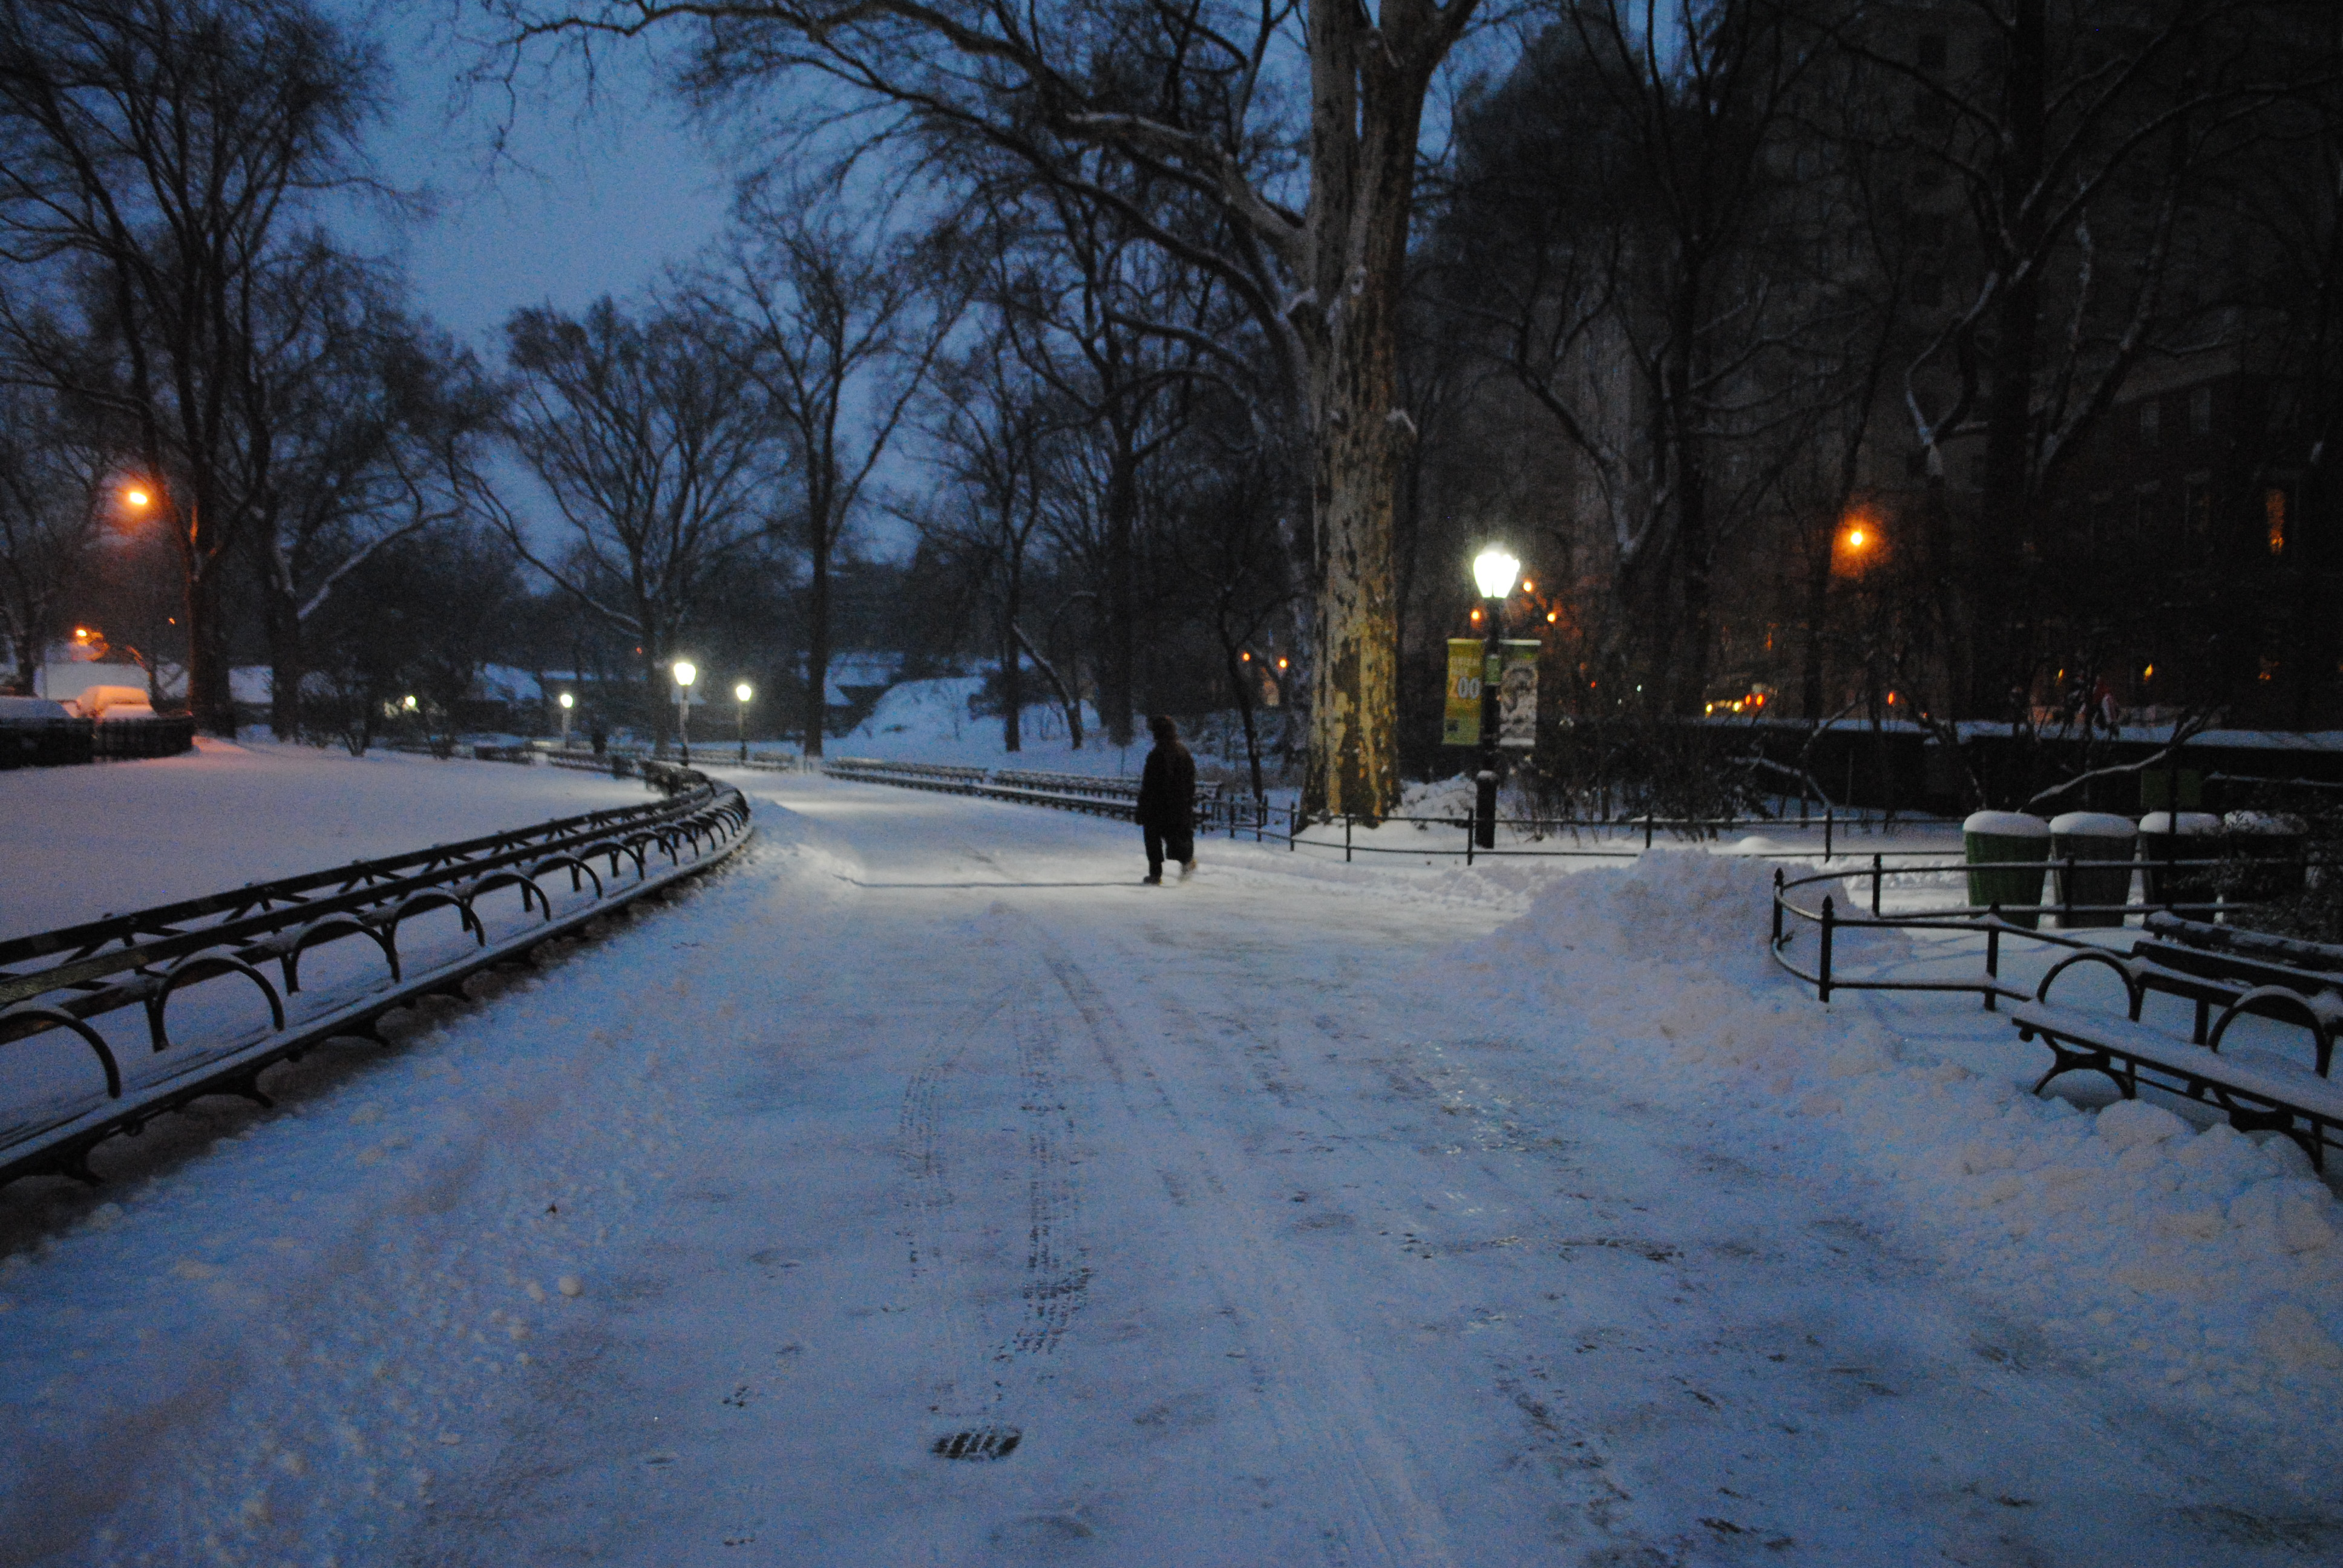 Most of the walkways were already plowed at 6:30!  Still skiiable.